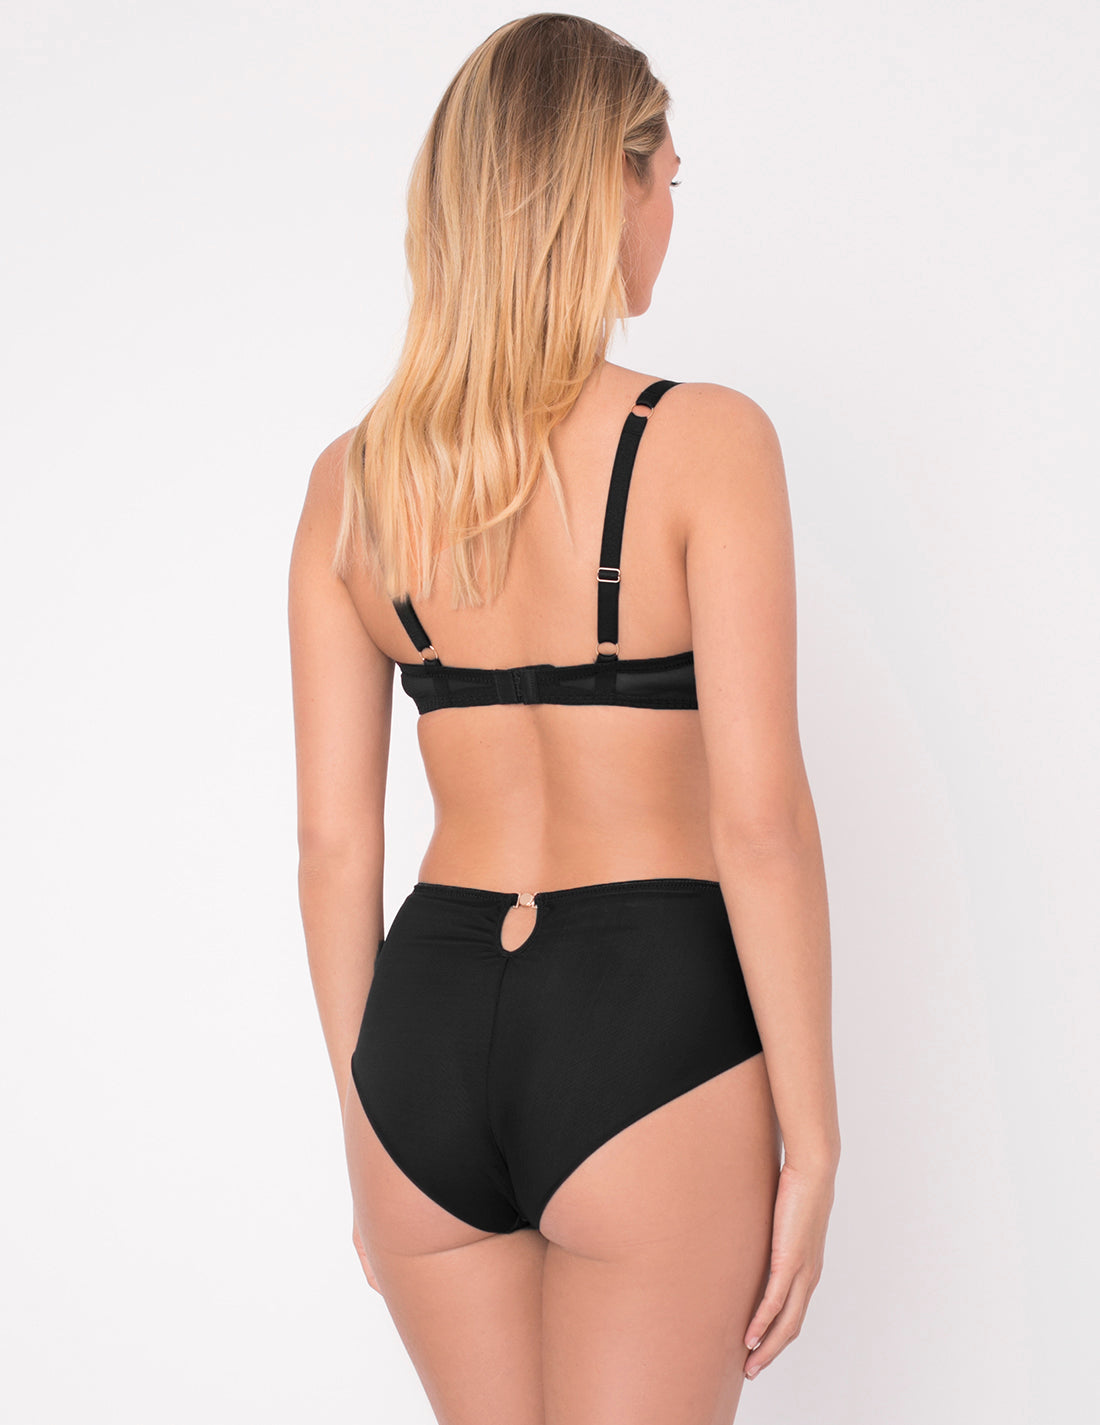 Bisou Bisou Noir Smooth High-Waisted Knickers